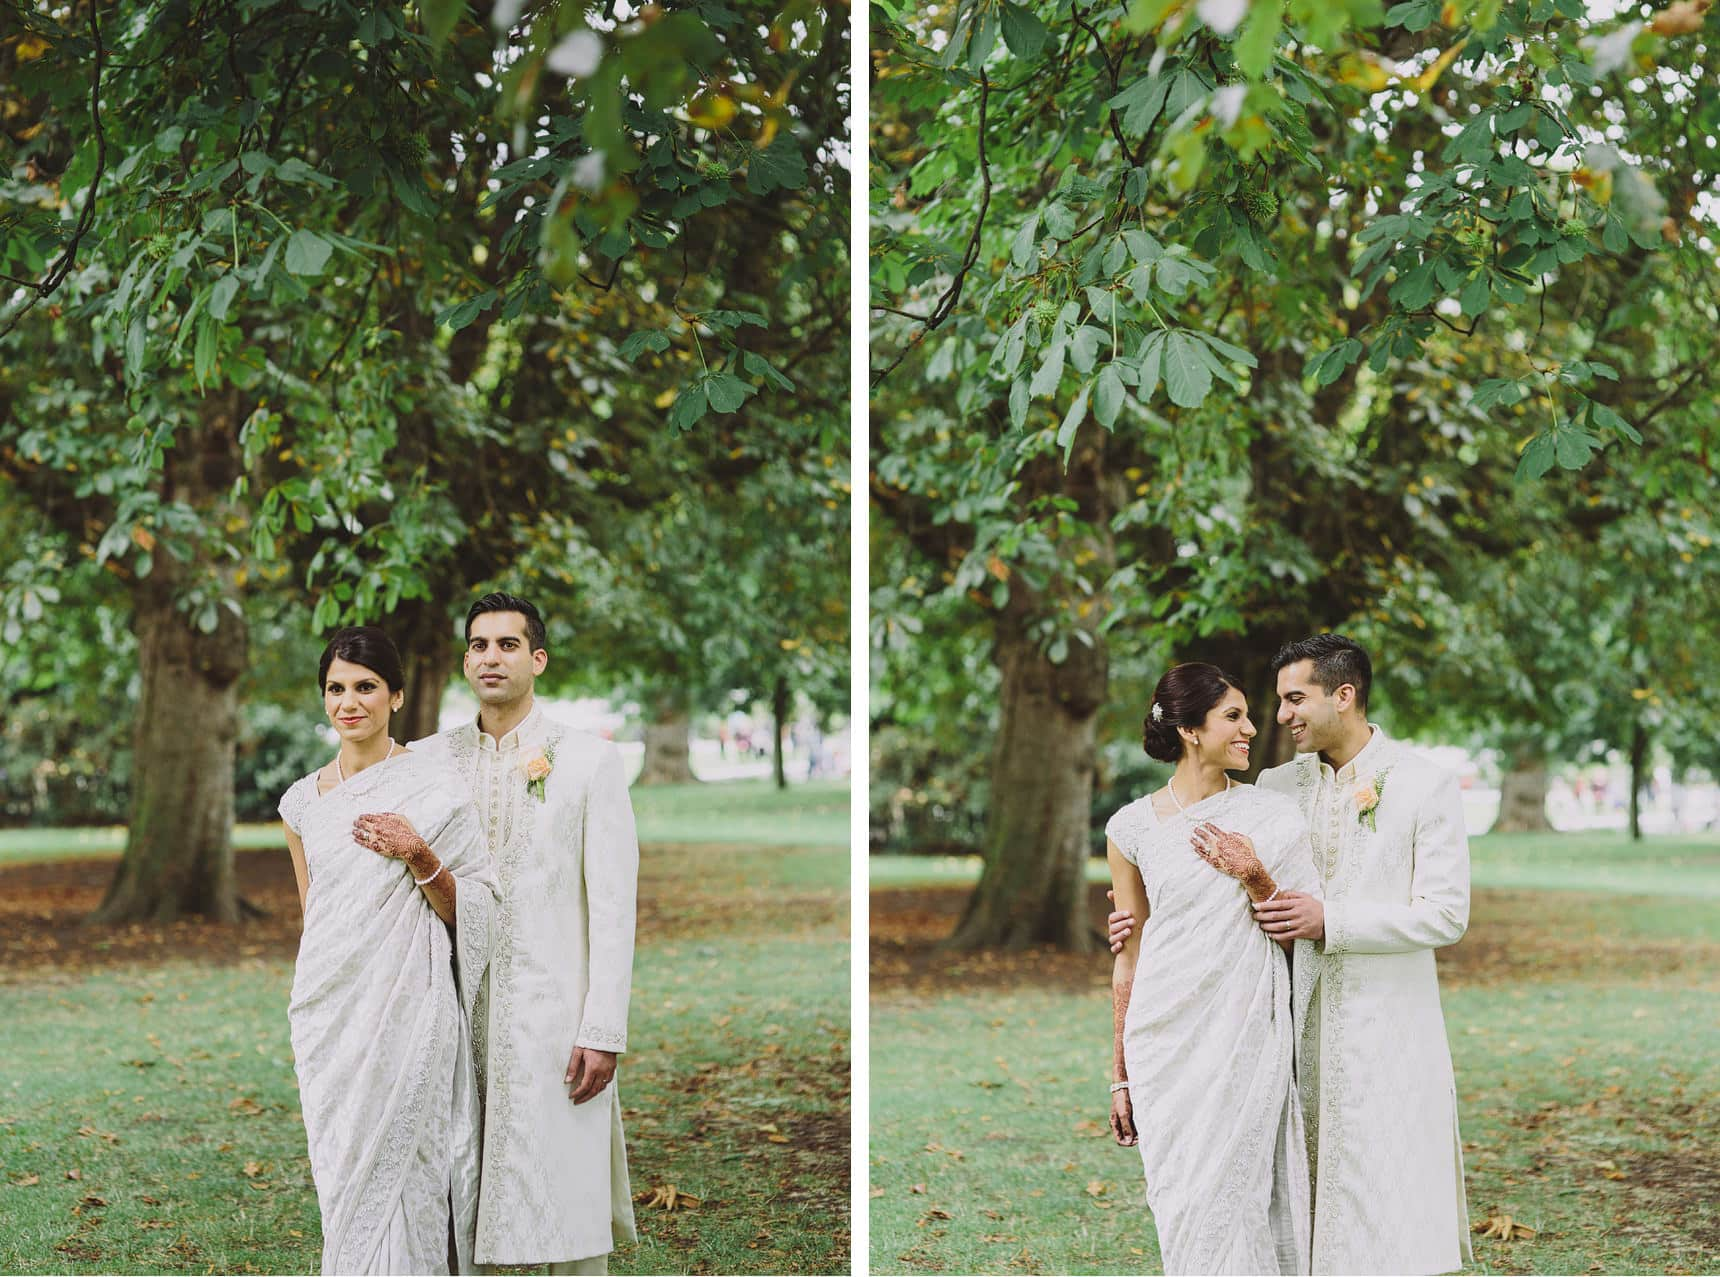 asian wedding portraits in hyde park london